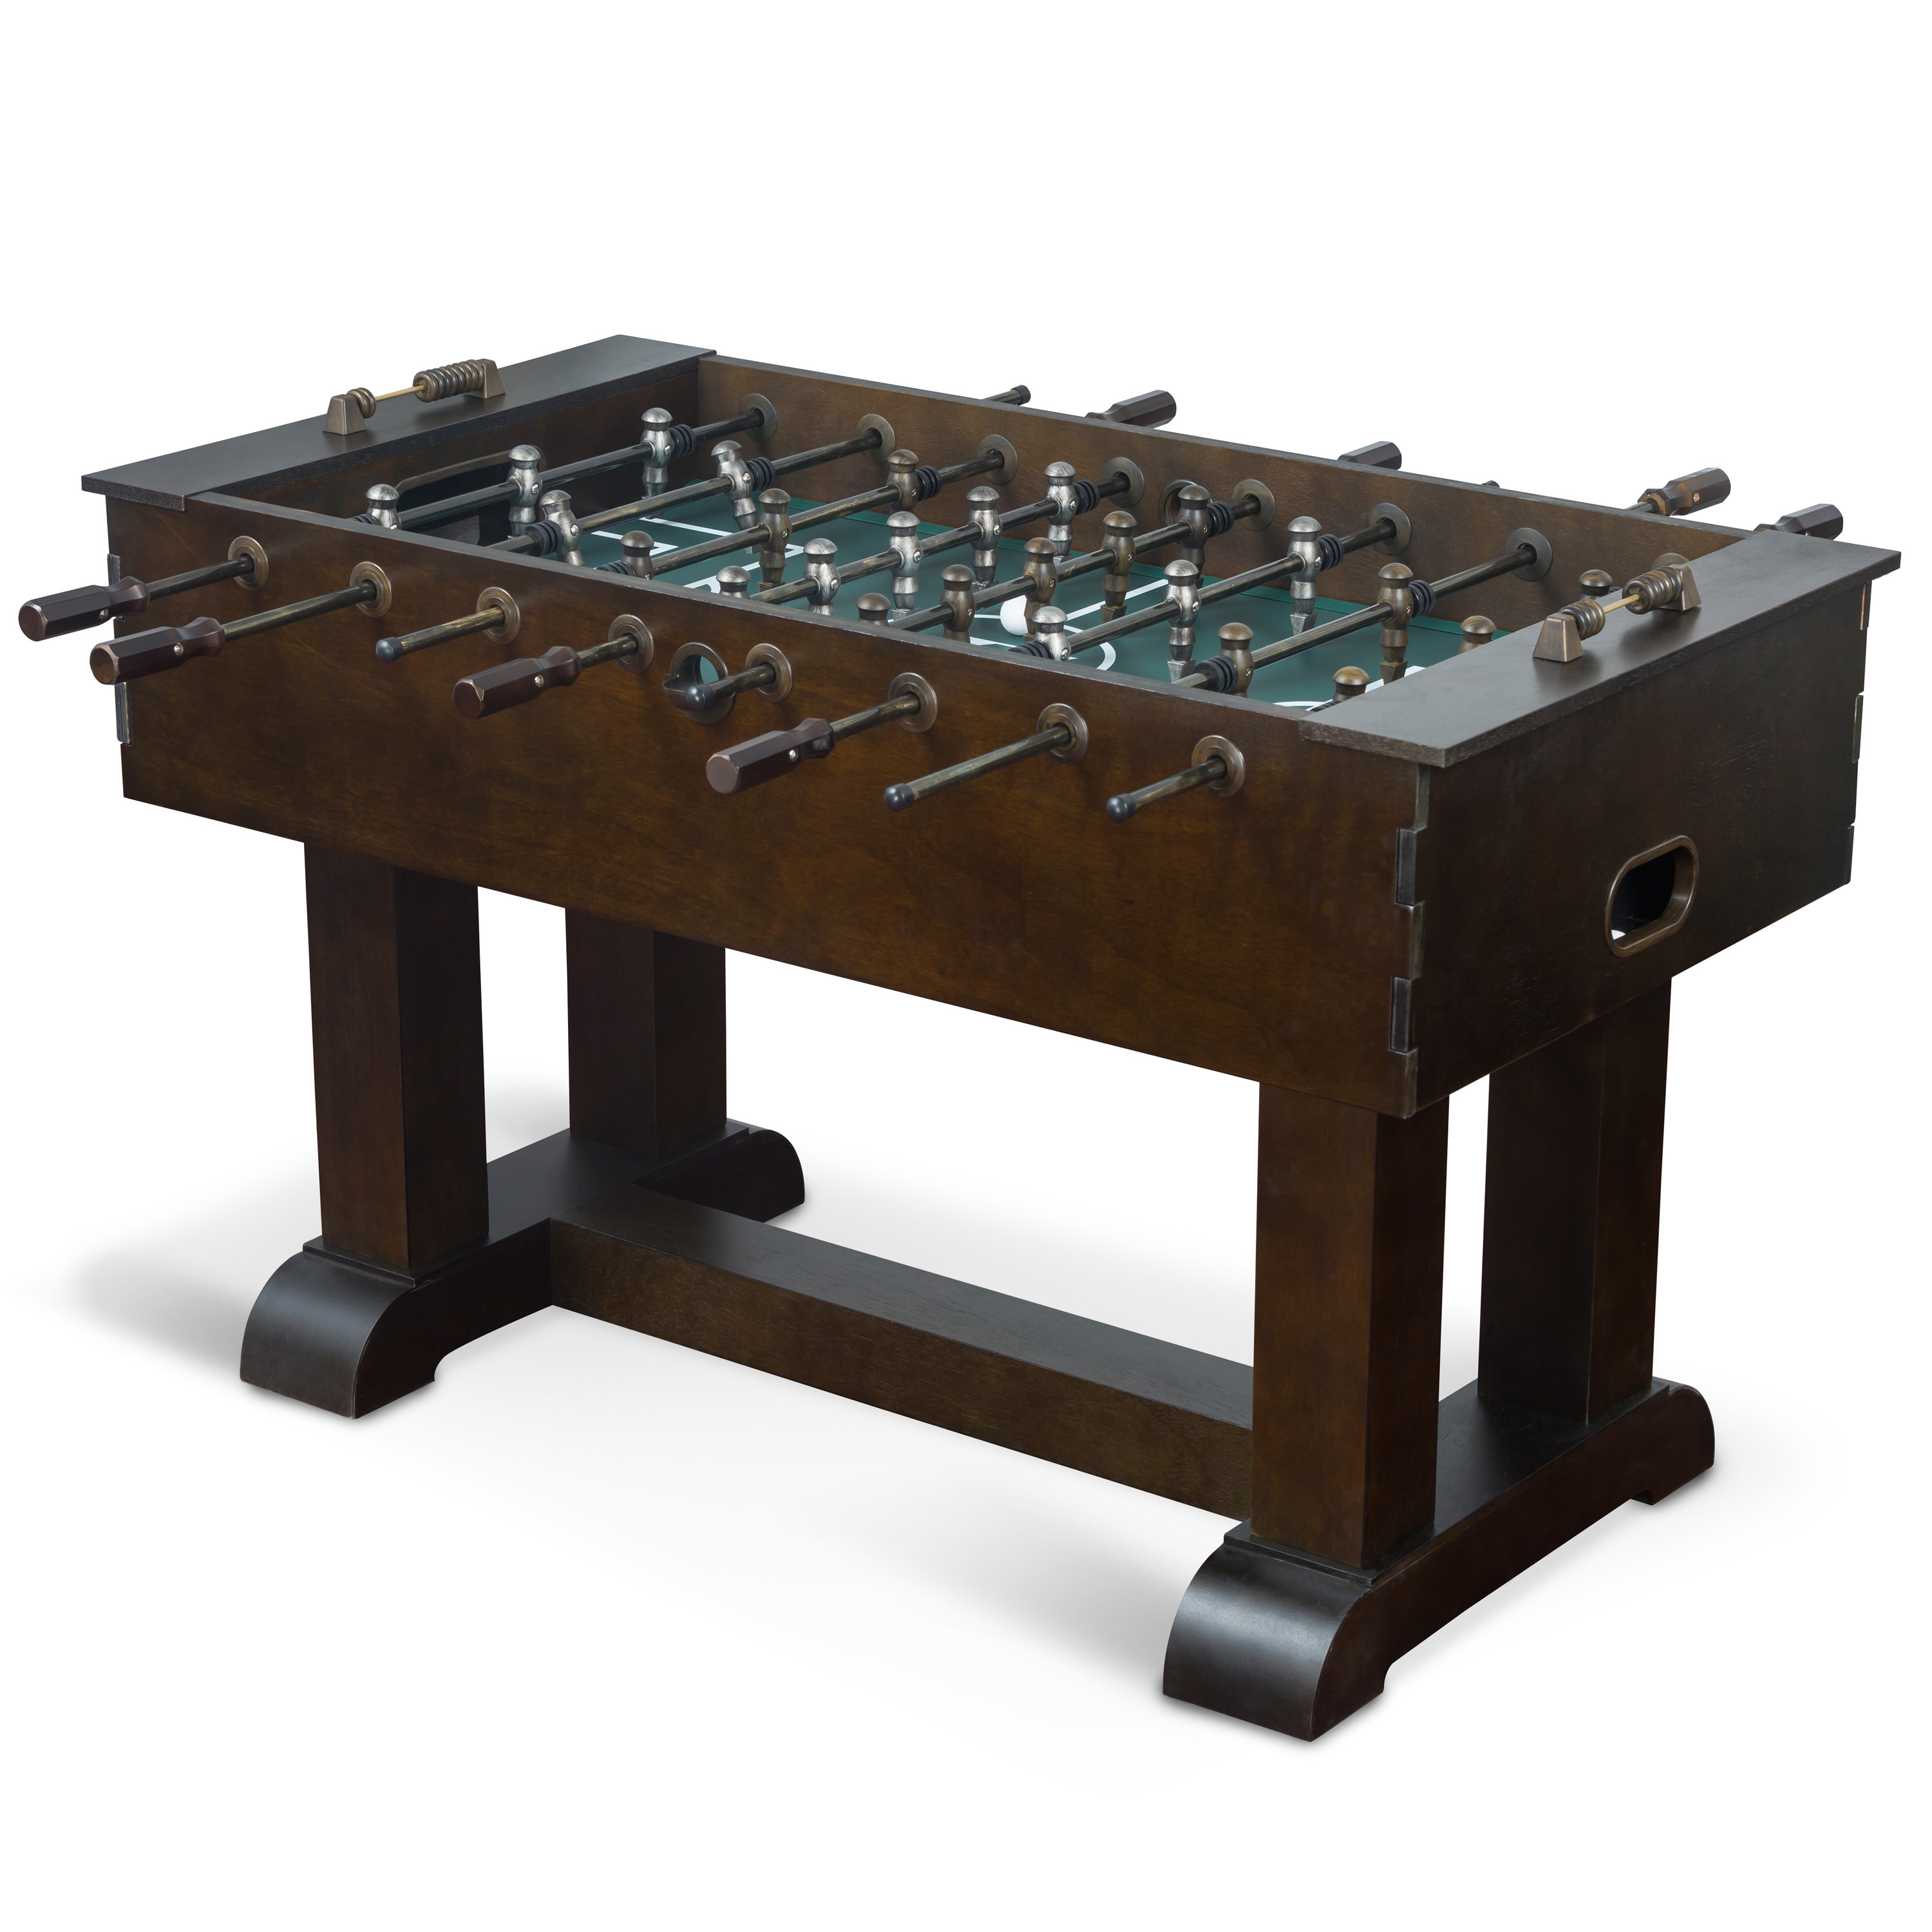 Charmant EastPoint Sports Durango Foosball Table Soccer, ...